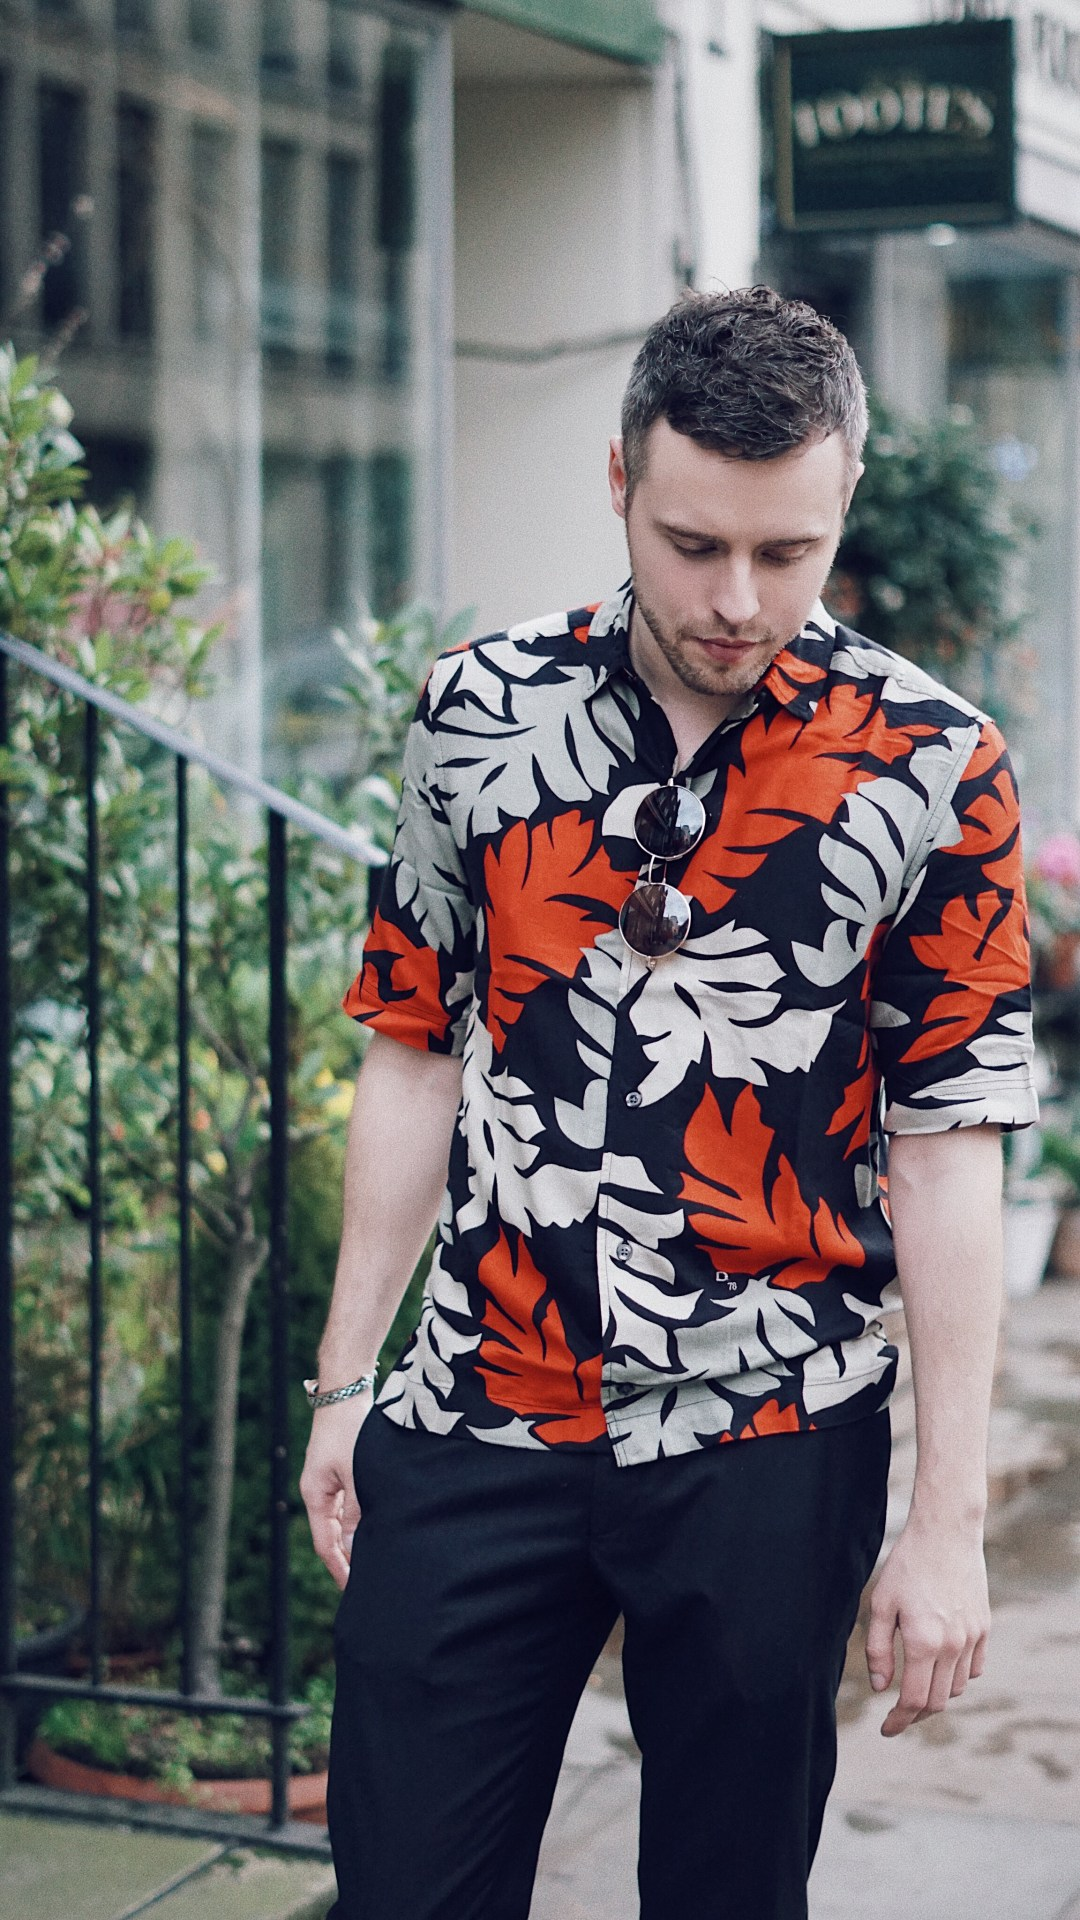 Plants and Leaves. Wearing S-WESTY Leaf Print Jersey Short Sleeve Shirt from Diesel, Skinny Cropped Trousers from Noak and Black Buckle Slip Ons from Primark. Snapped in Fitzrovia. Mr. Salt and Pepper by Skirmantas Petraitis